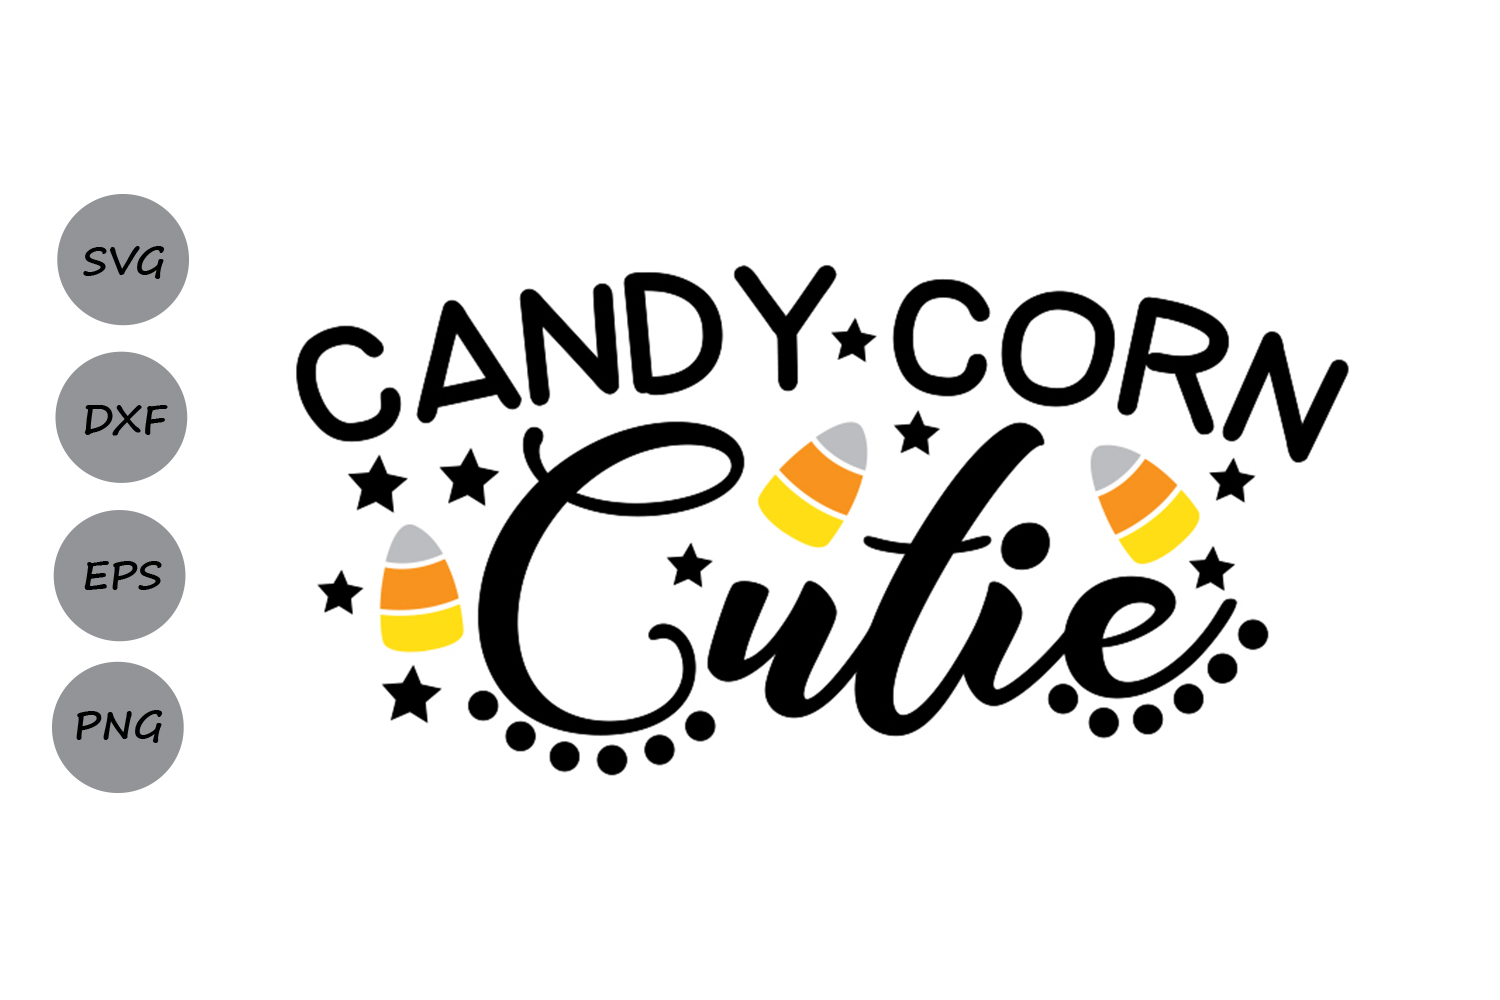 Download Free Candy Corn Cutie Svg Graphic By Cosmosfineart Creative Fabrica for Cricut Explore, Silhouette and other cutting machines.